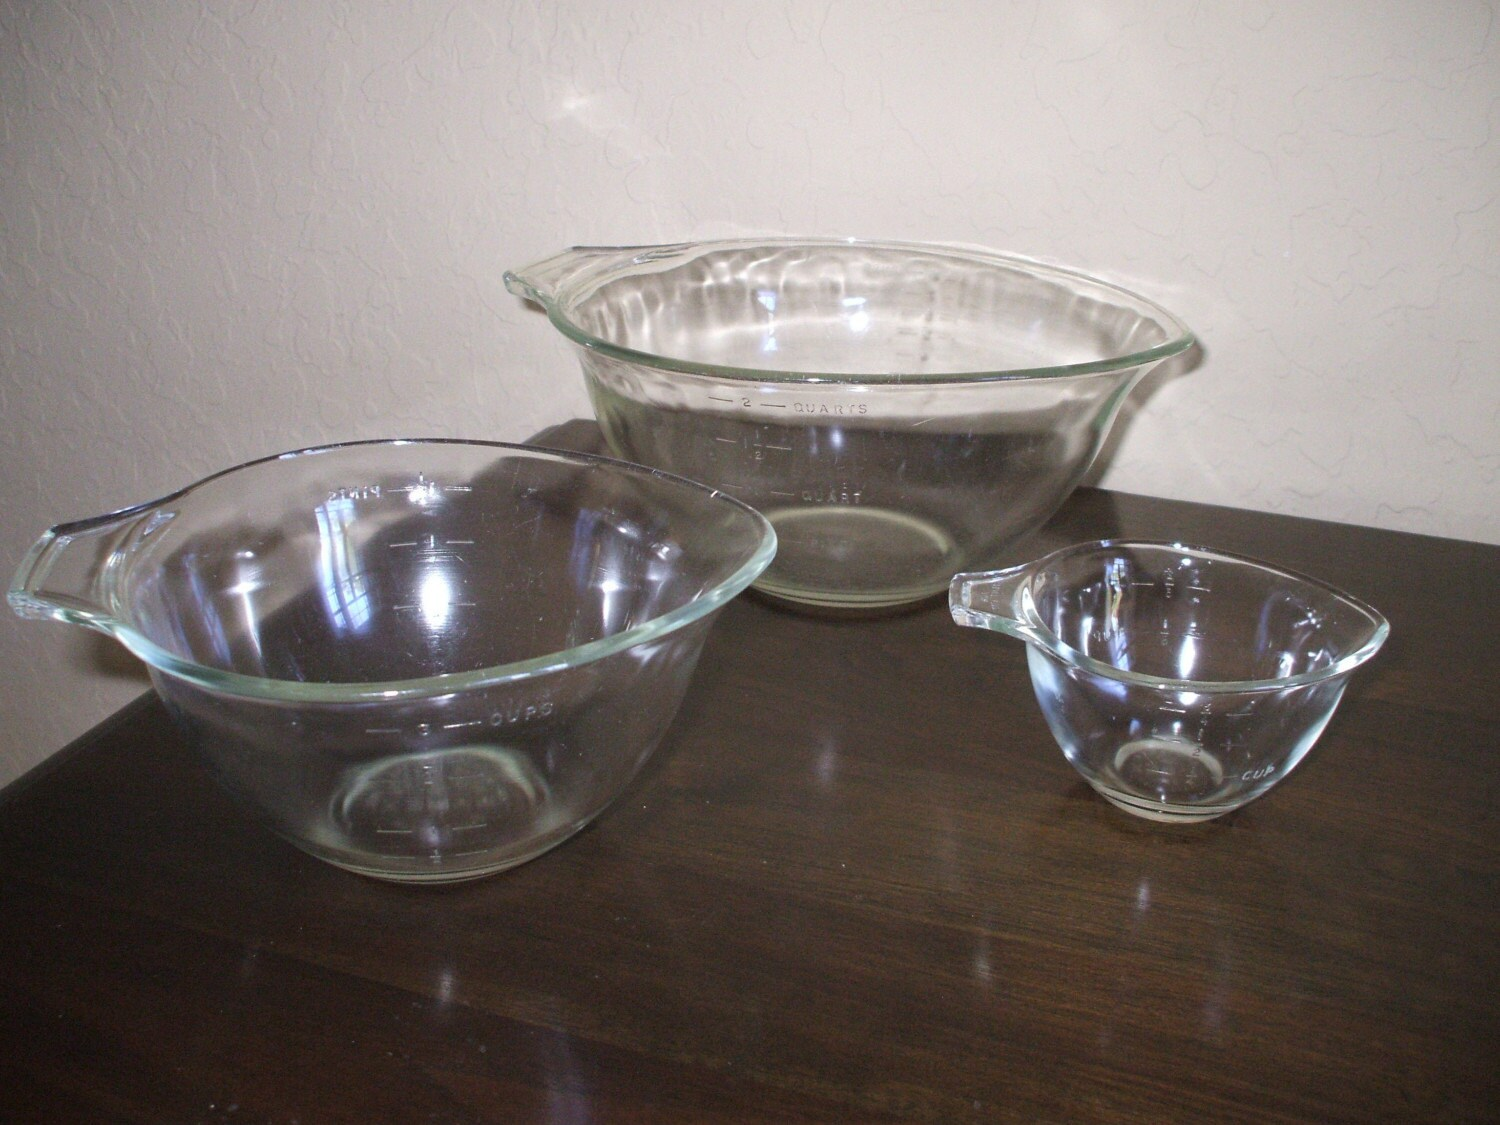 Dating pyrex measuring cups